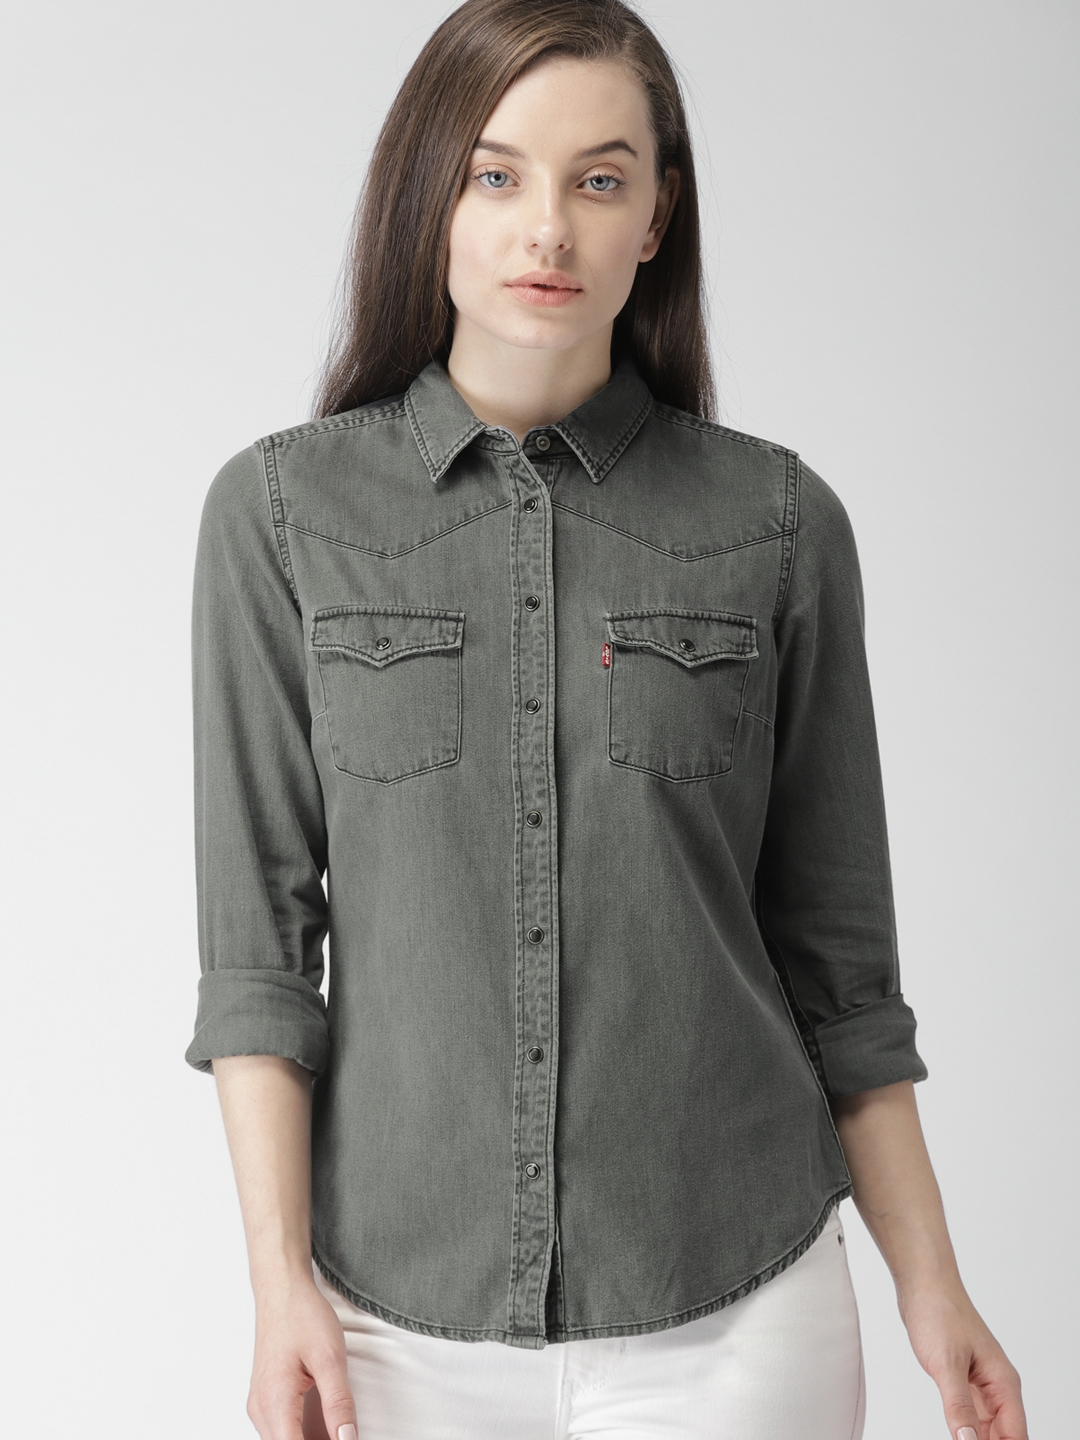 c7337229 Buy Levis Women Black Regular Fit Faded Casual Shirt - Shirts for ...